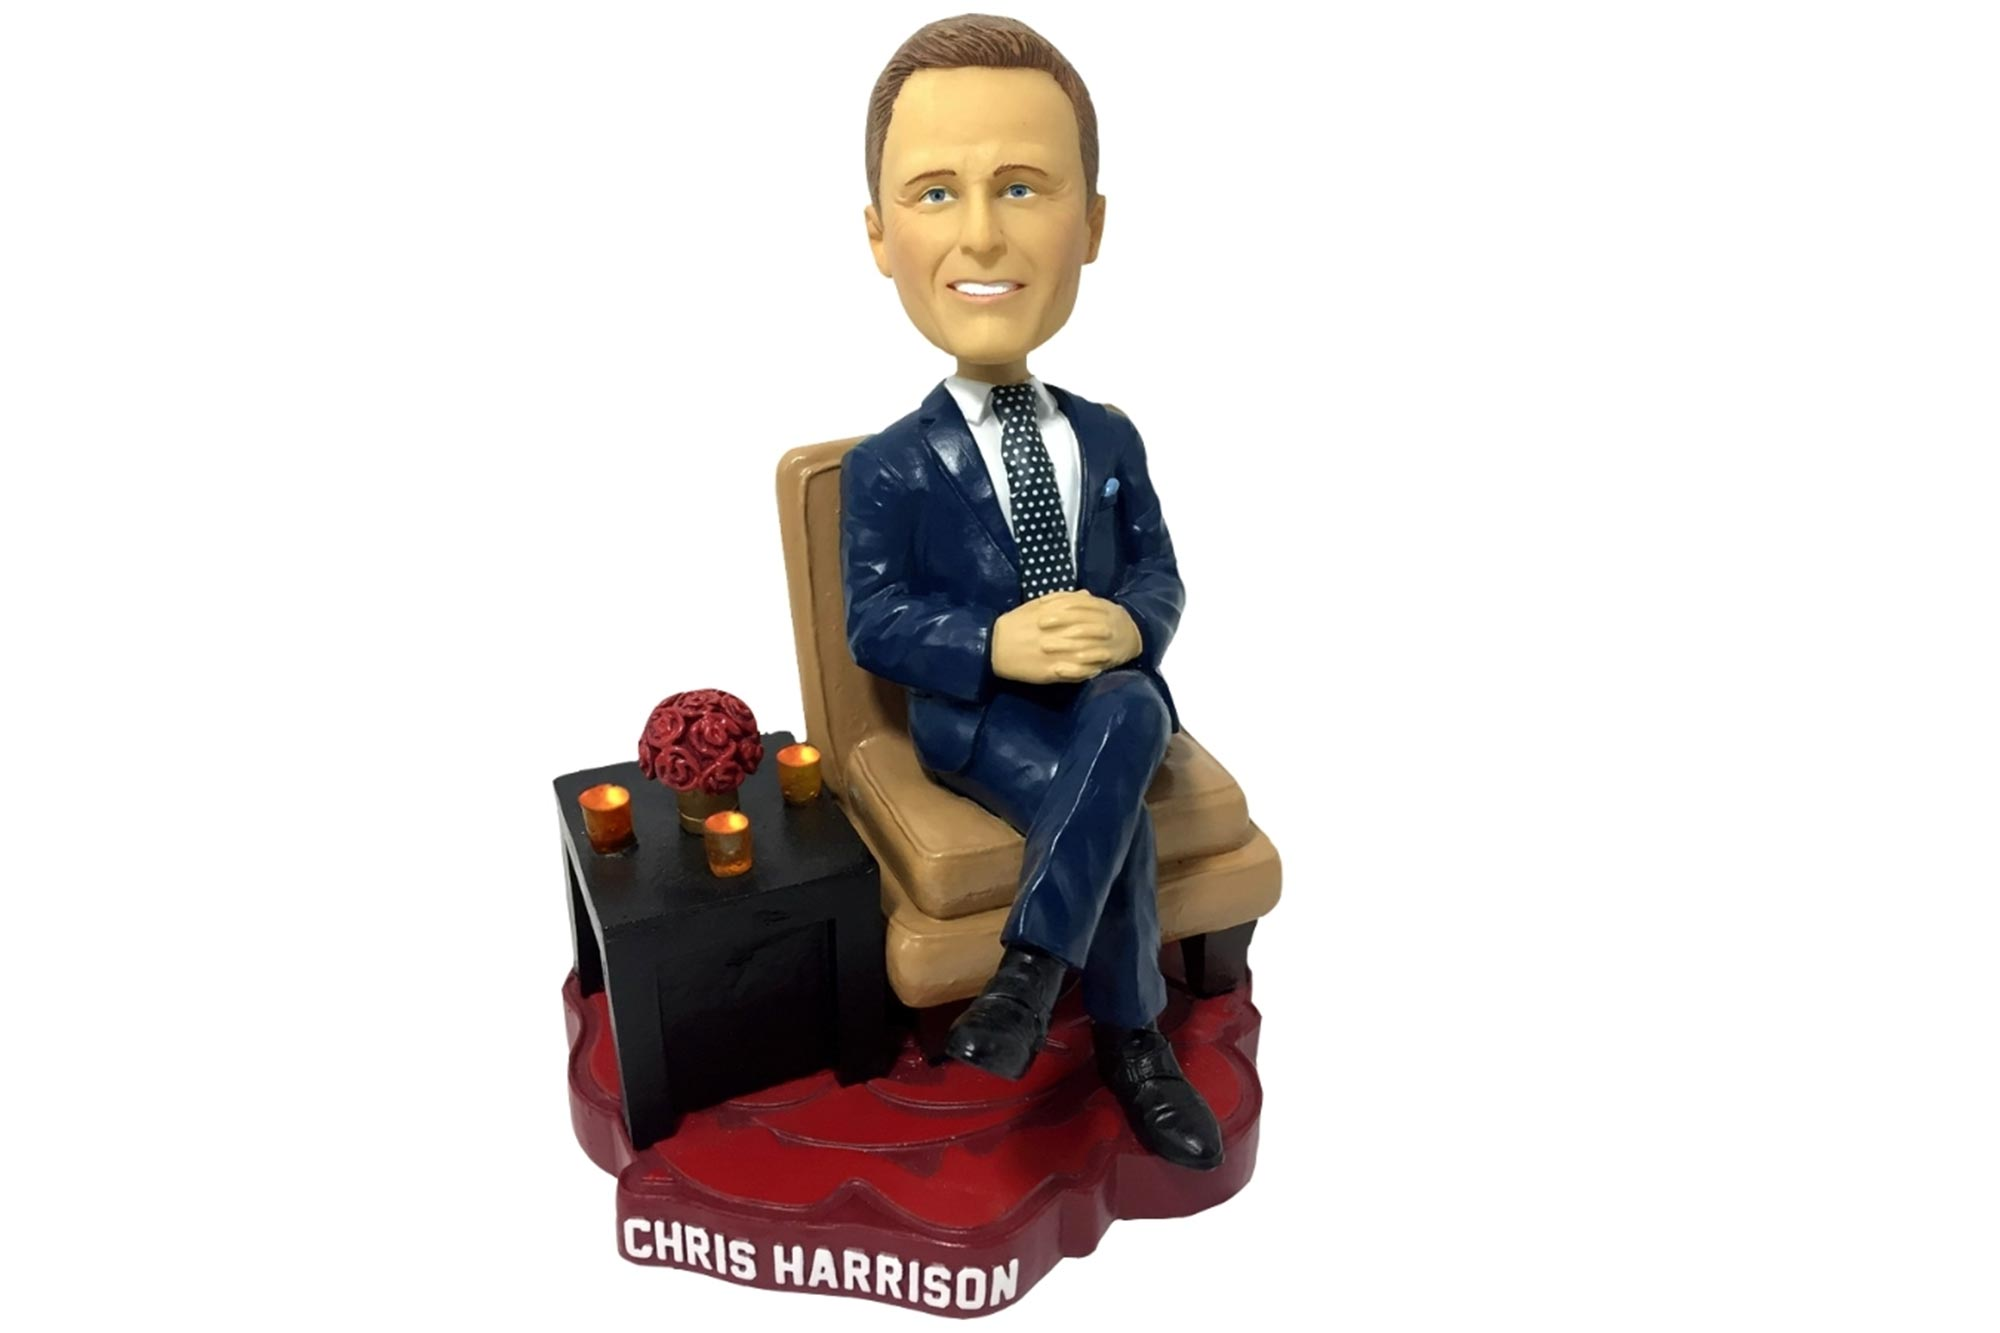 Chris Harrison Bobblehead